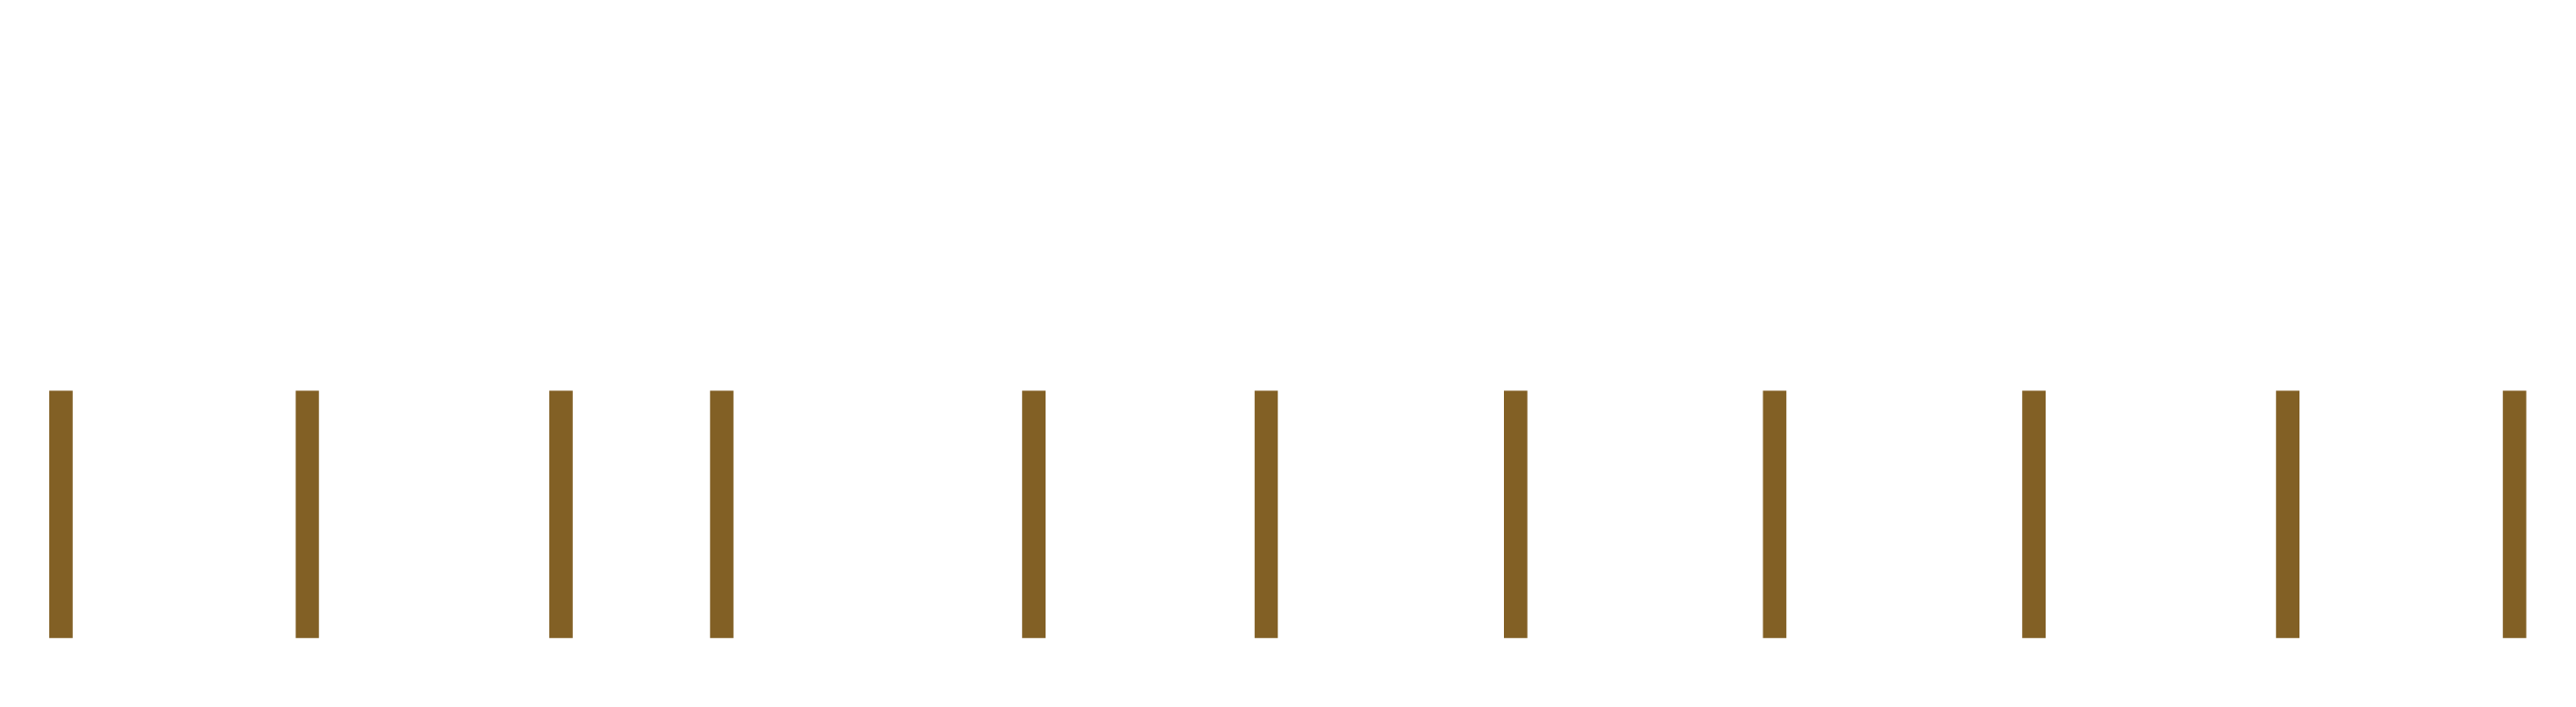 Primecourt Printers & Stationers